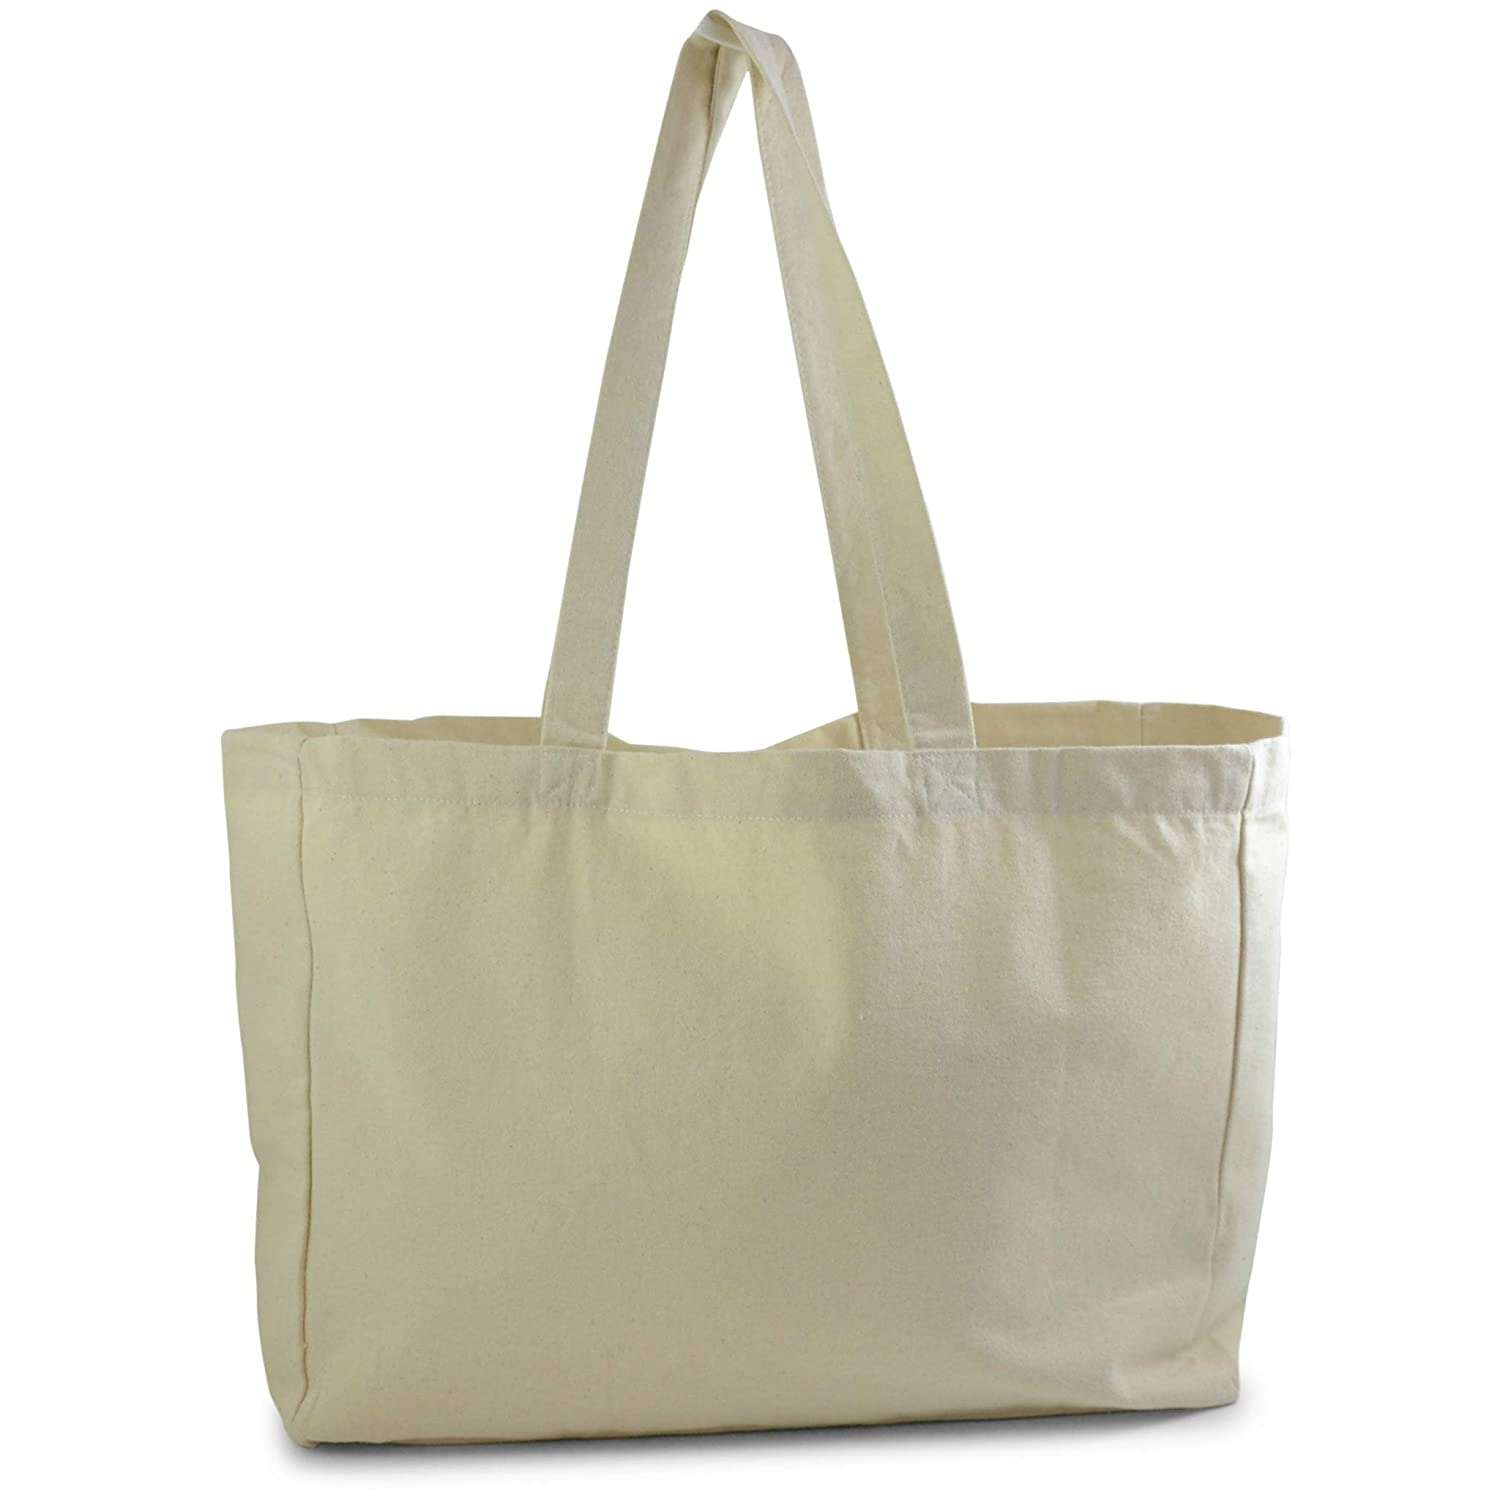 f8e9cf463b0 Natural Color Cotton Tote Bag, perfect for beach, grocery shopping, craft  projects - extra thick, large, durable,washable,100% cotton